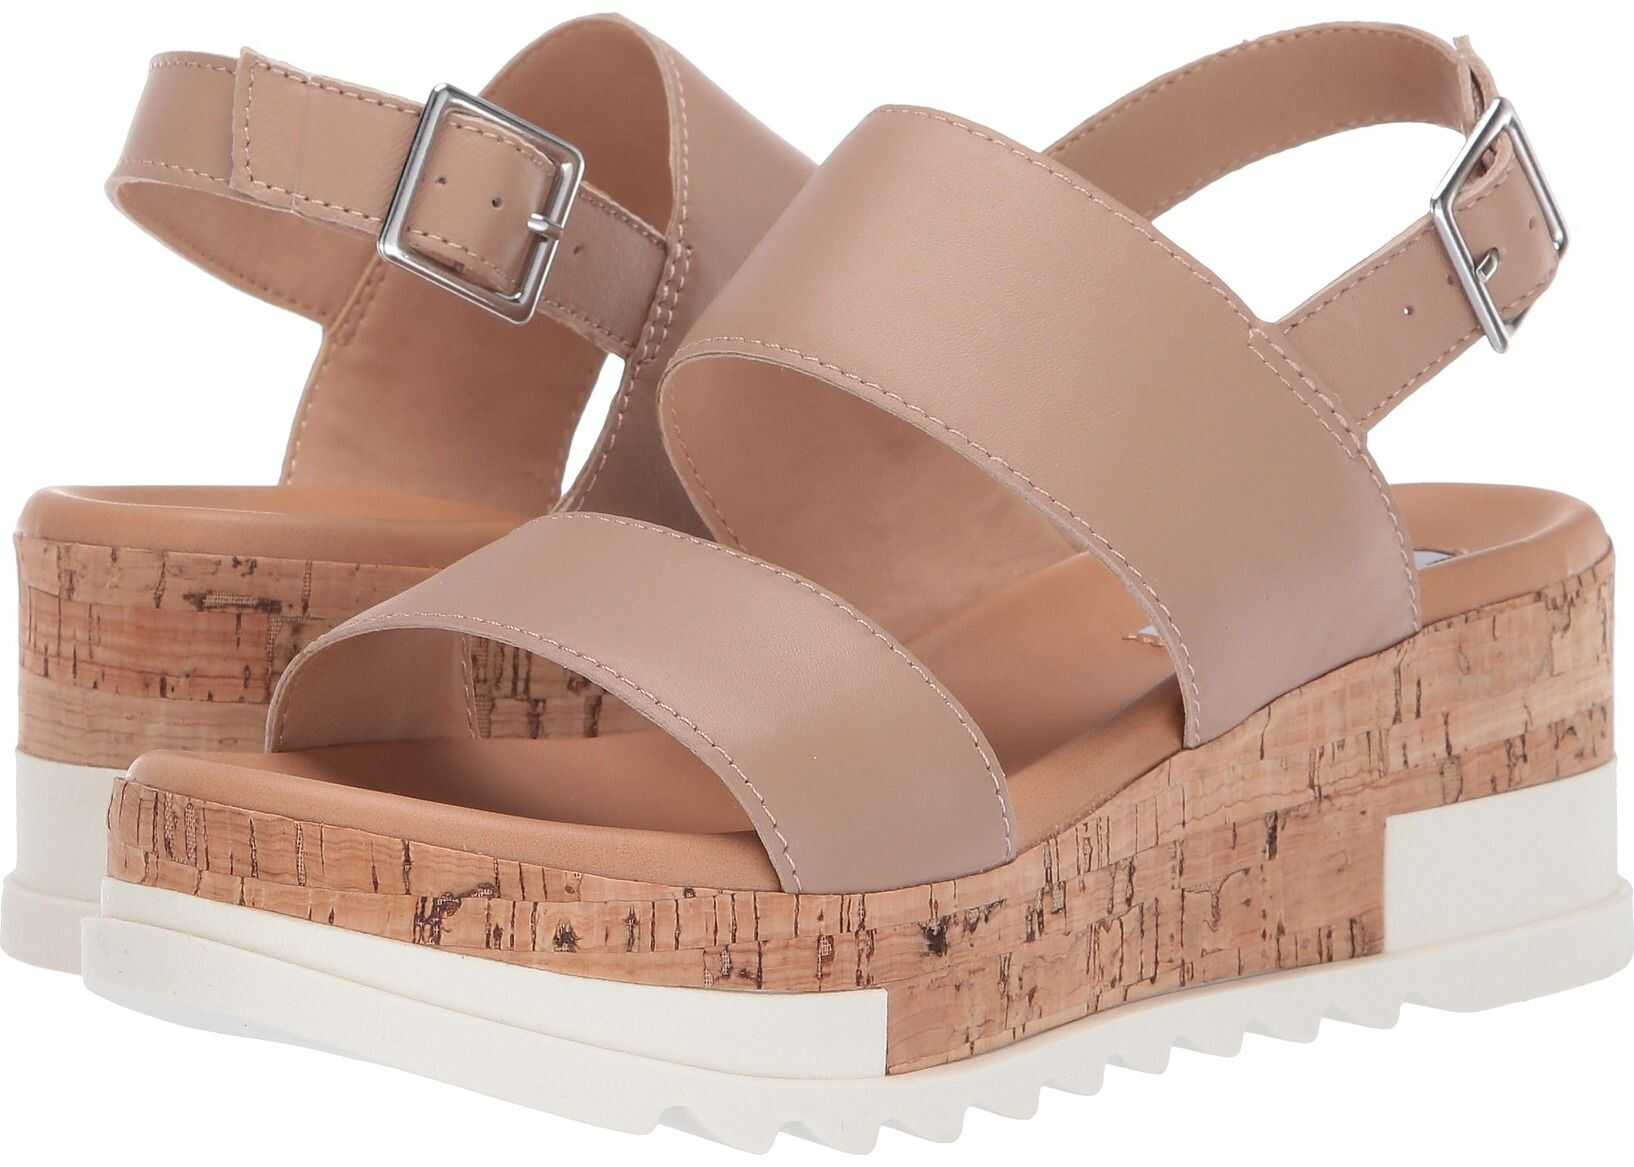 Steve Madden Brenda Wedge Sandal Natural Leather